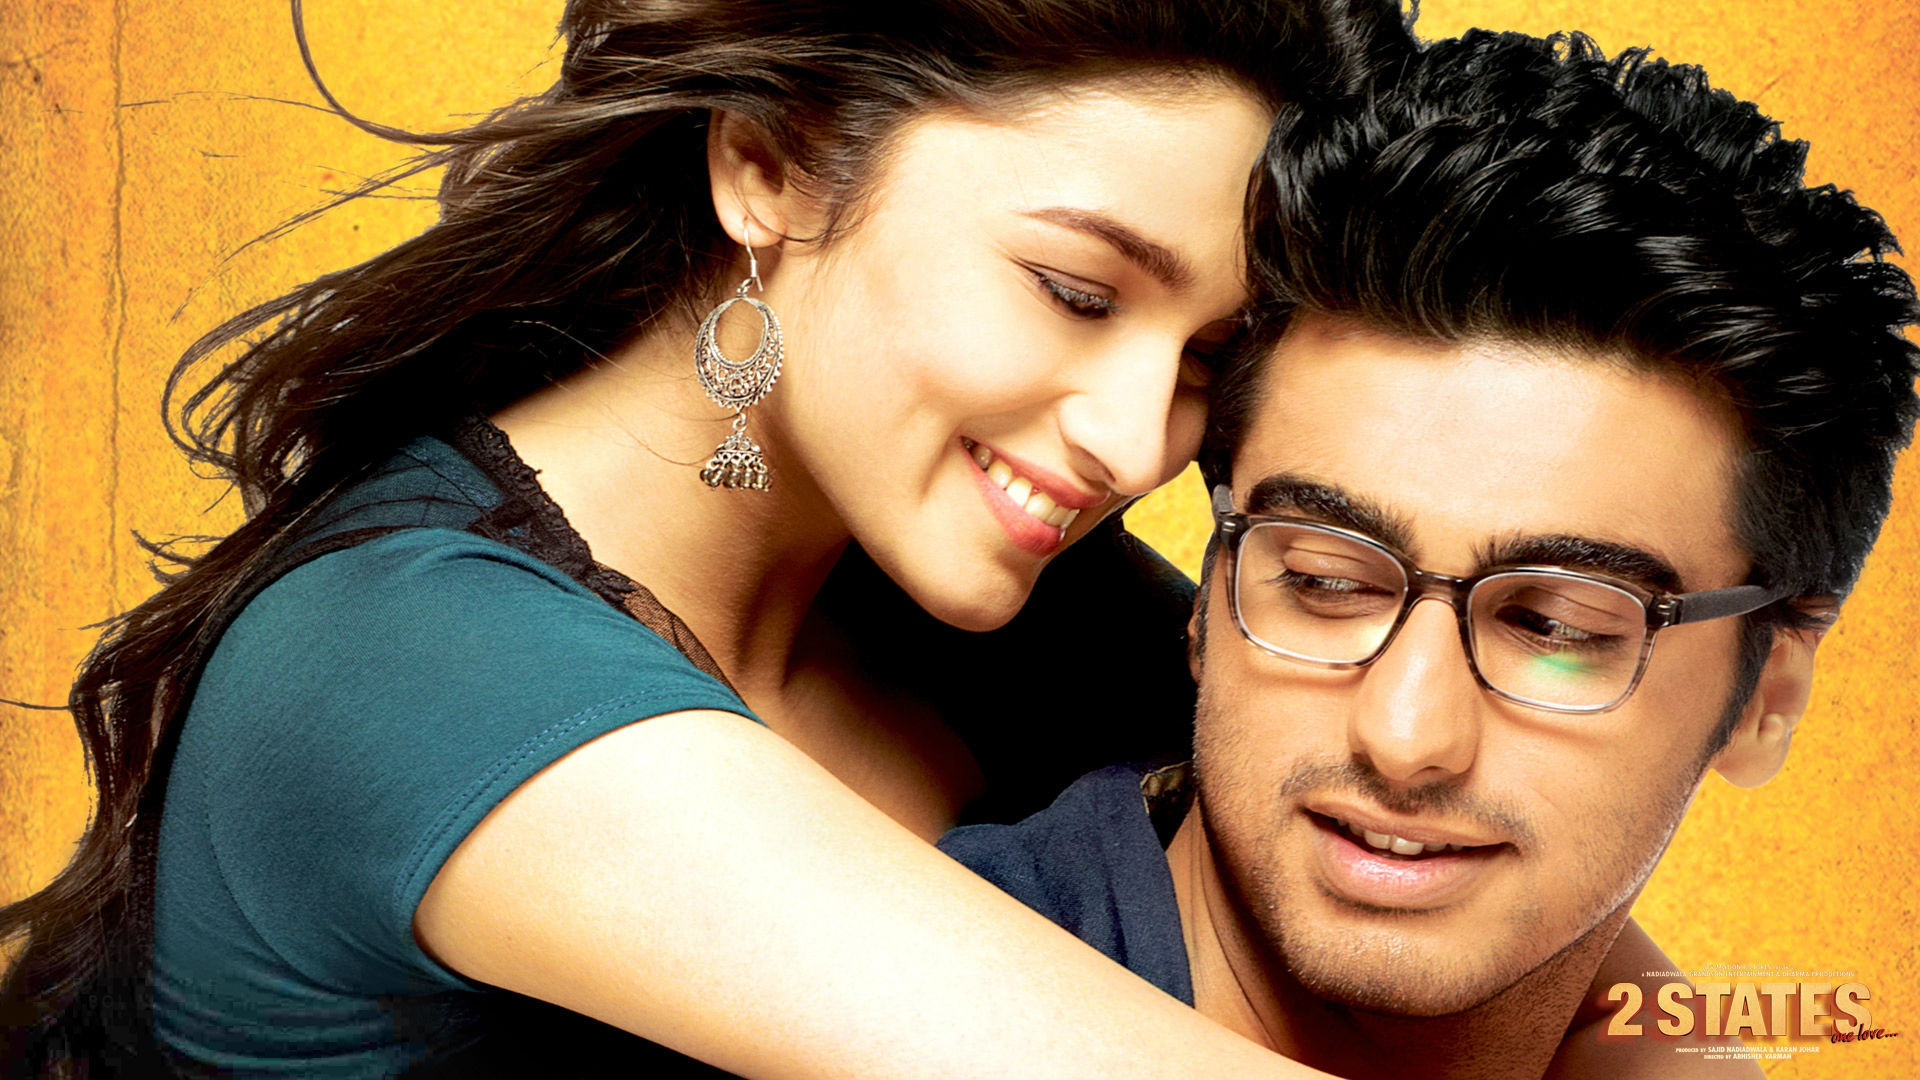 Romantic Couple Wallpapers With Love Quotes Hindi Alia Bhatt And Arjun Kapoor 2 States Wallpapers